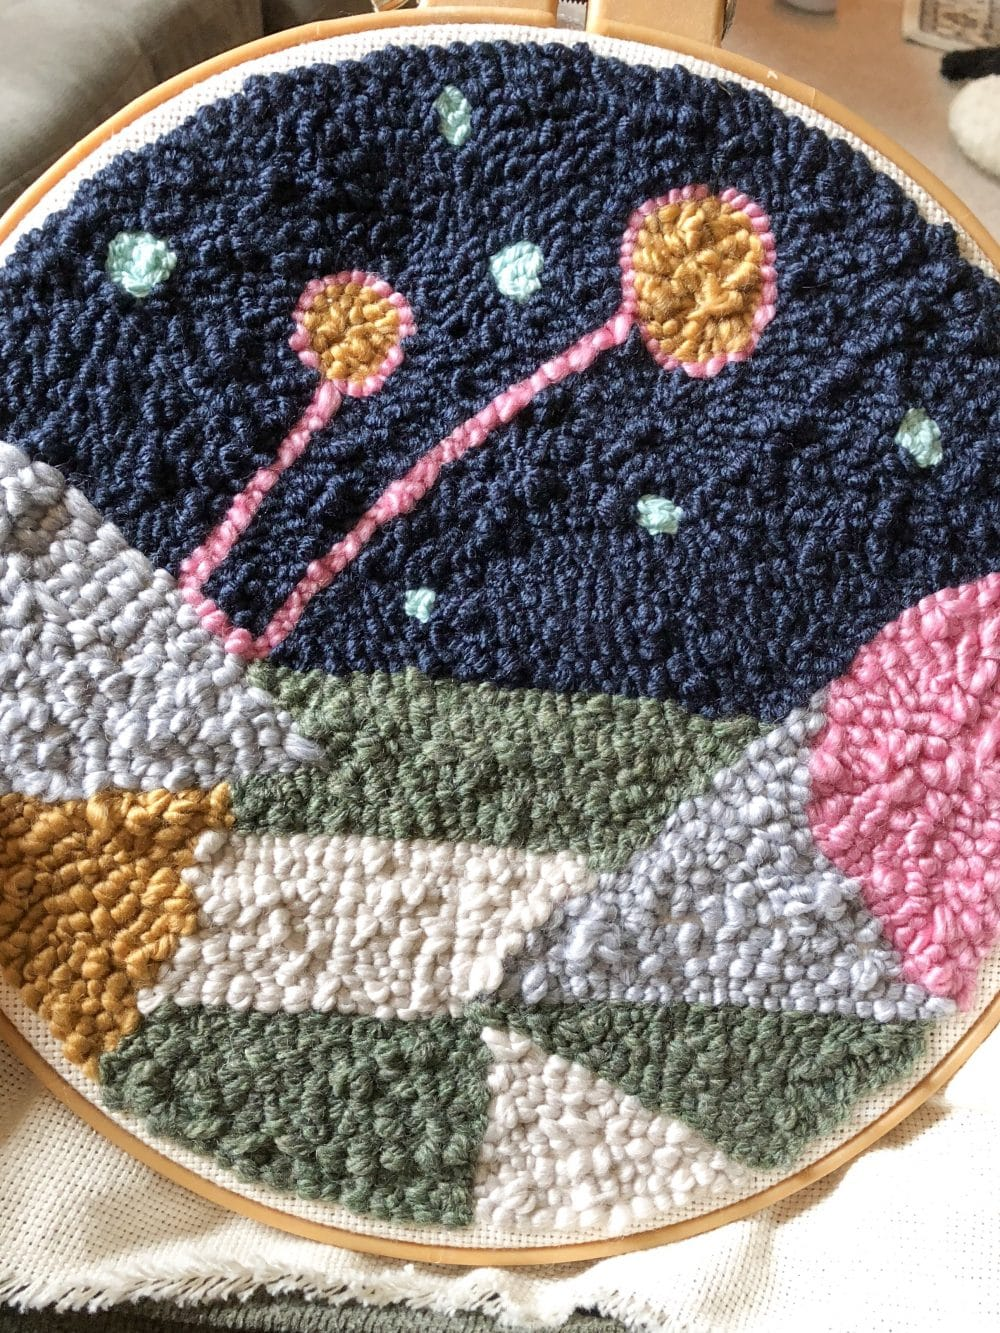 Punchneedle embroidery pillow embroidery pillow